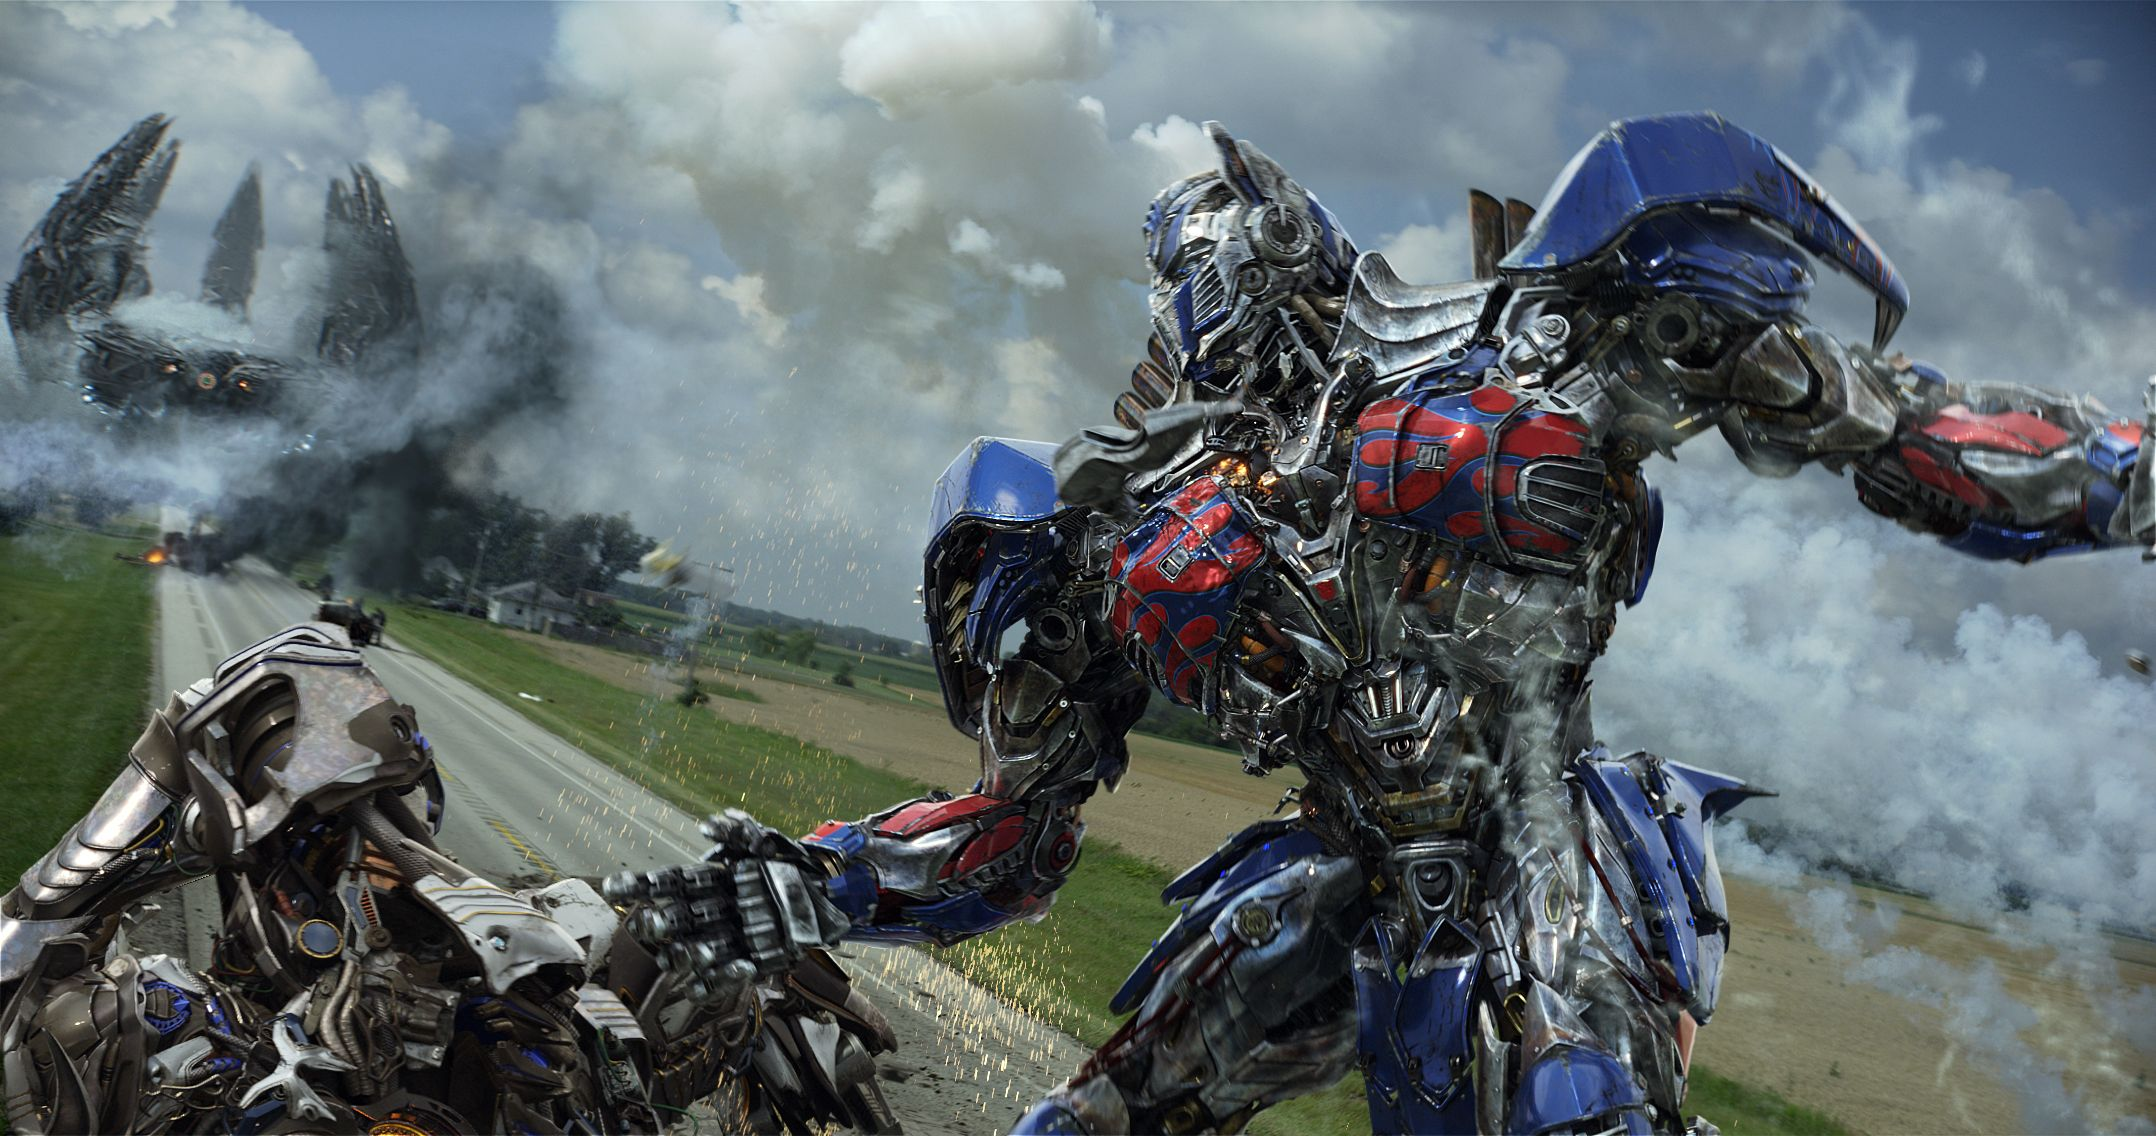 Transformers 5, 6 and 7 to launch back-to-back